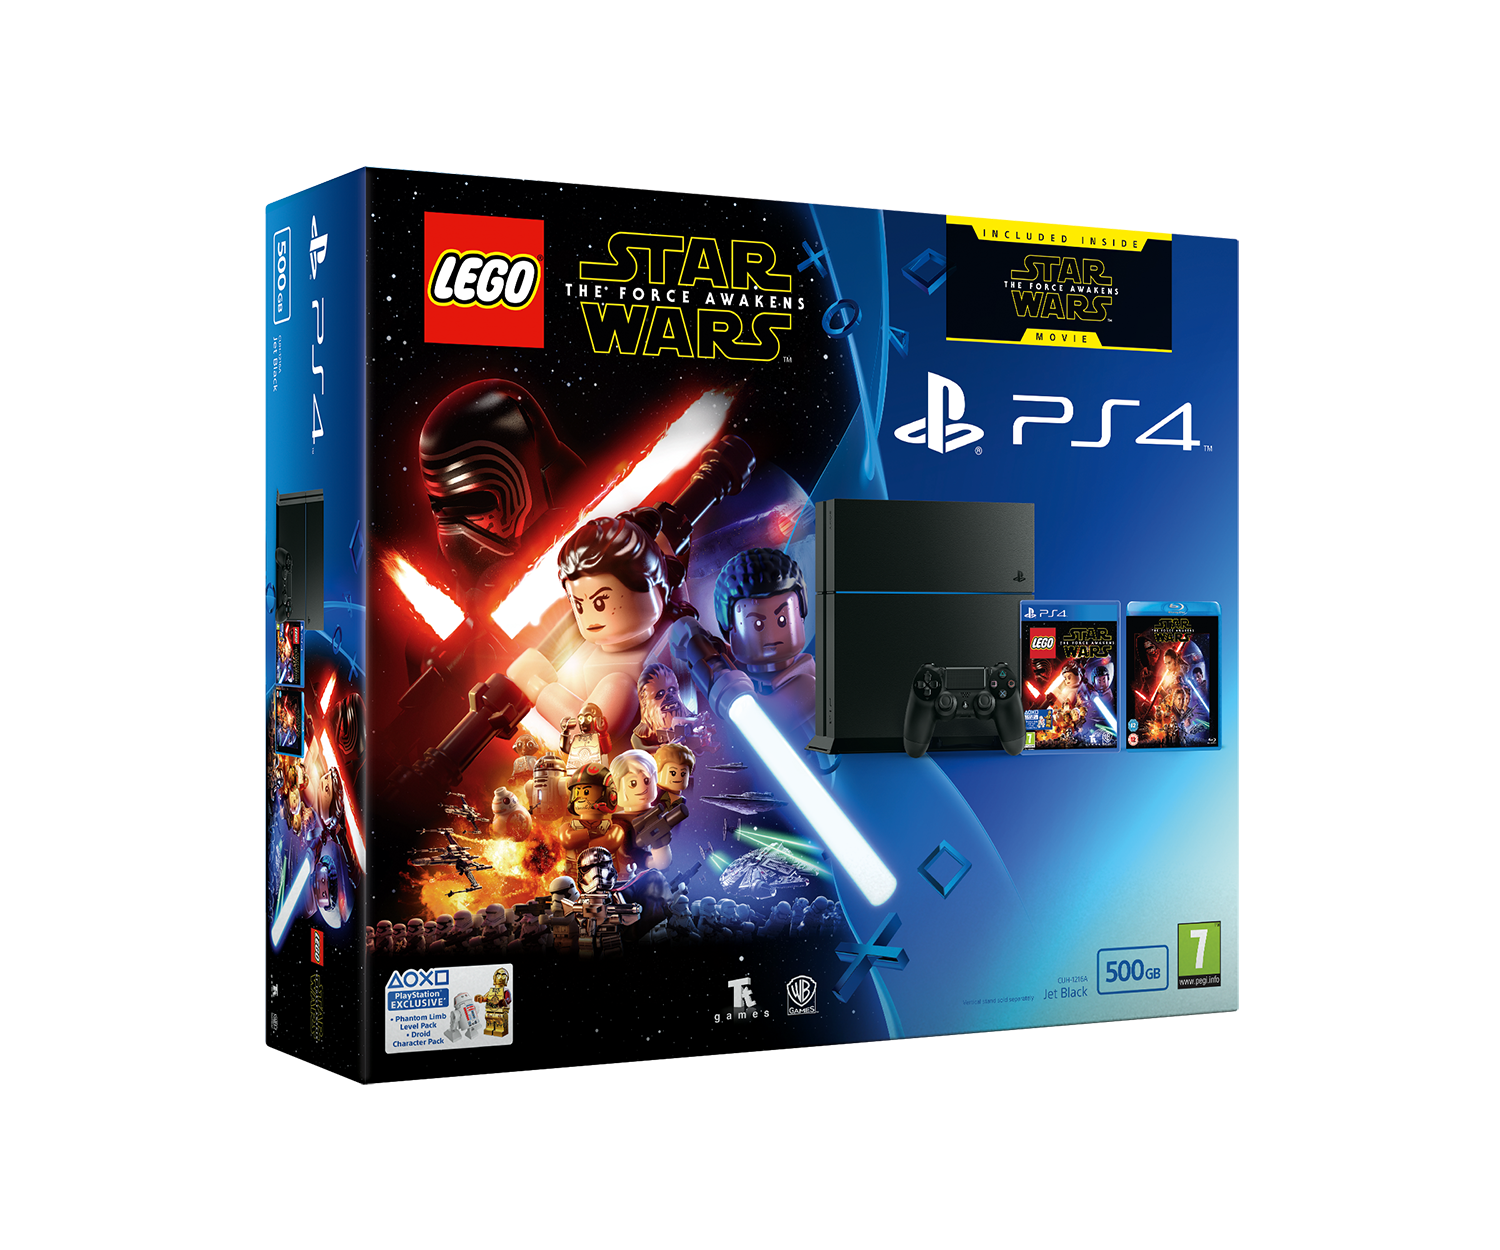 Sony PlayStation 4 500GB Console with LEGO Star Wars: The